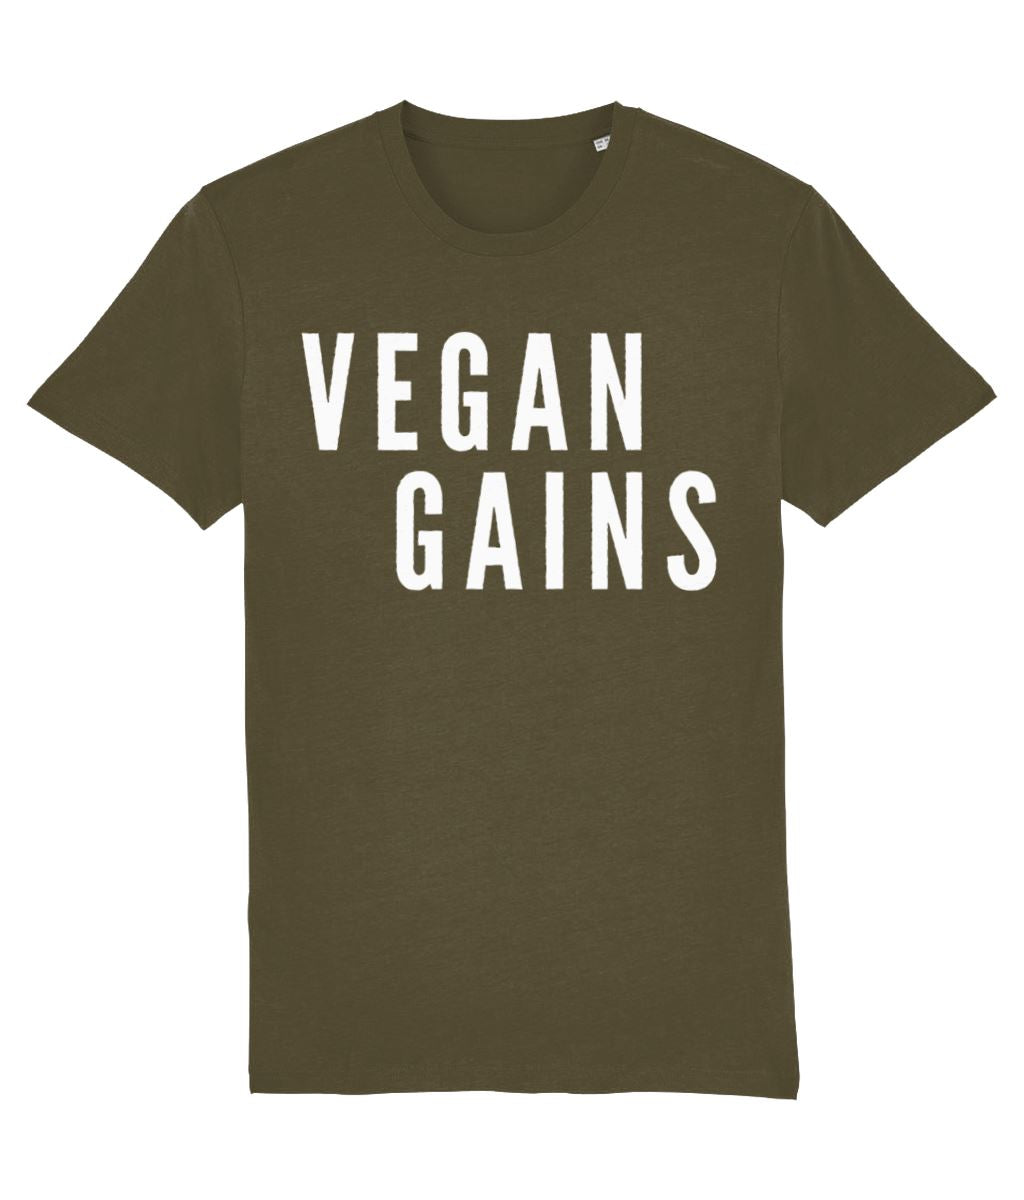 """Vegan Gains"" T-Shirt - 100% Organic Cotton (Unisex) Clothing Vegan Original British Khaki X-Small"